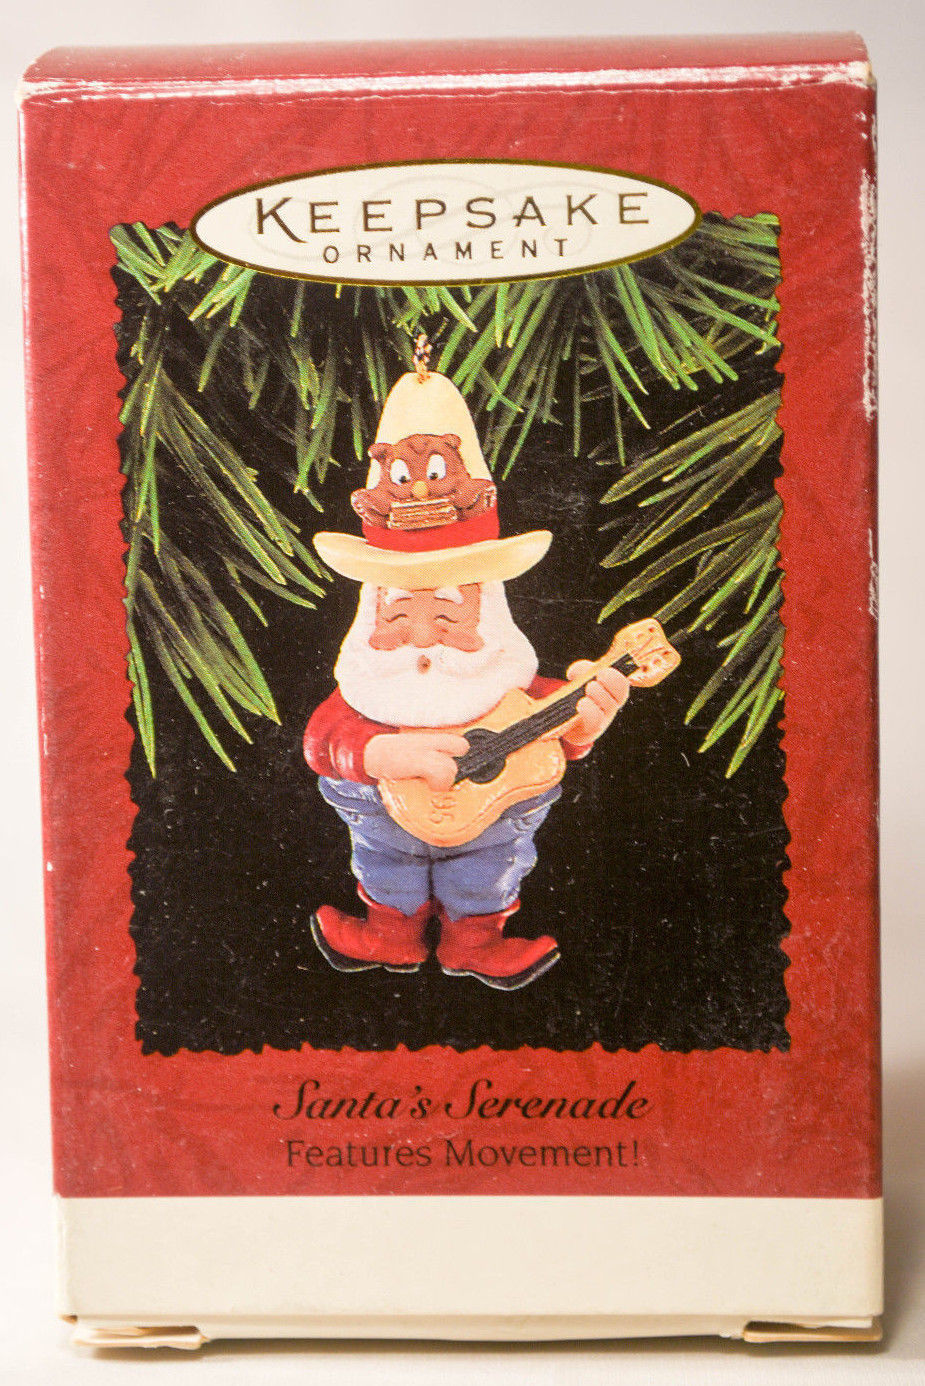 Primary image for Hallmark Santa's Serenade  Features Movement!  1995 Holiday Ornament